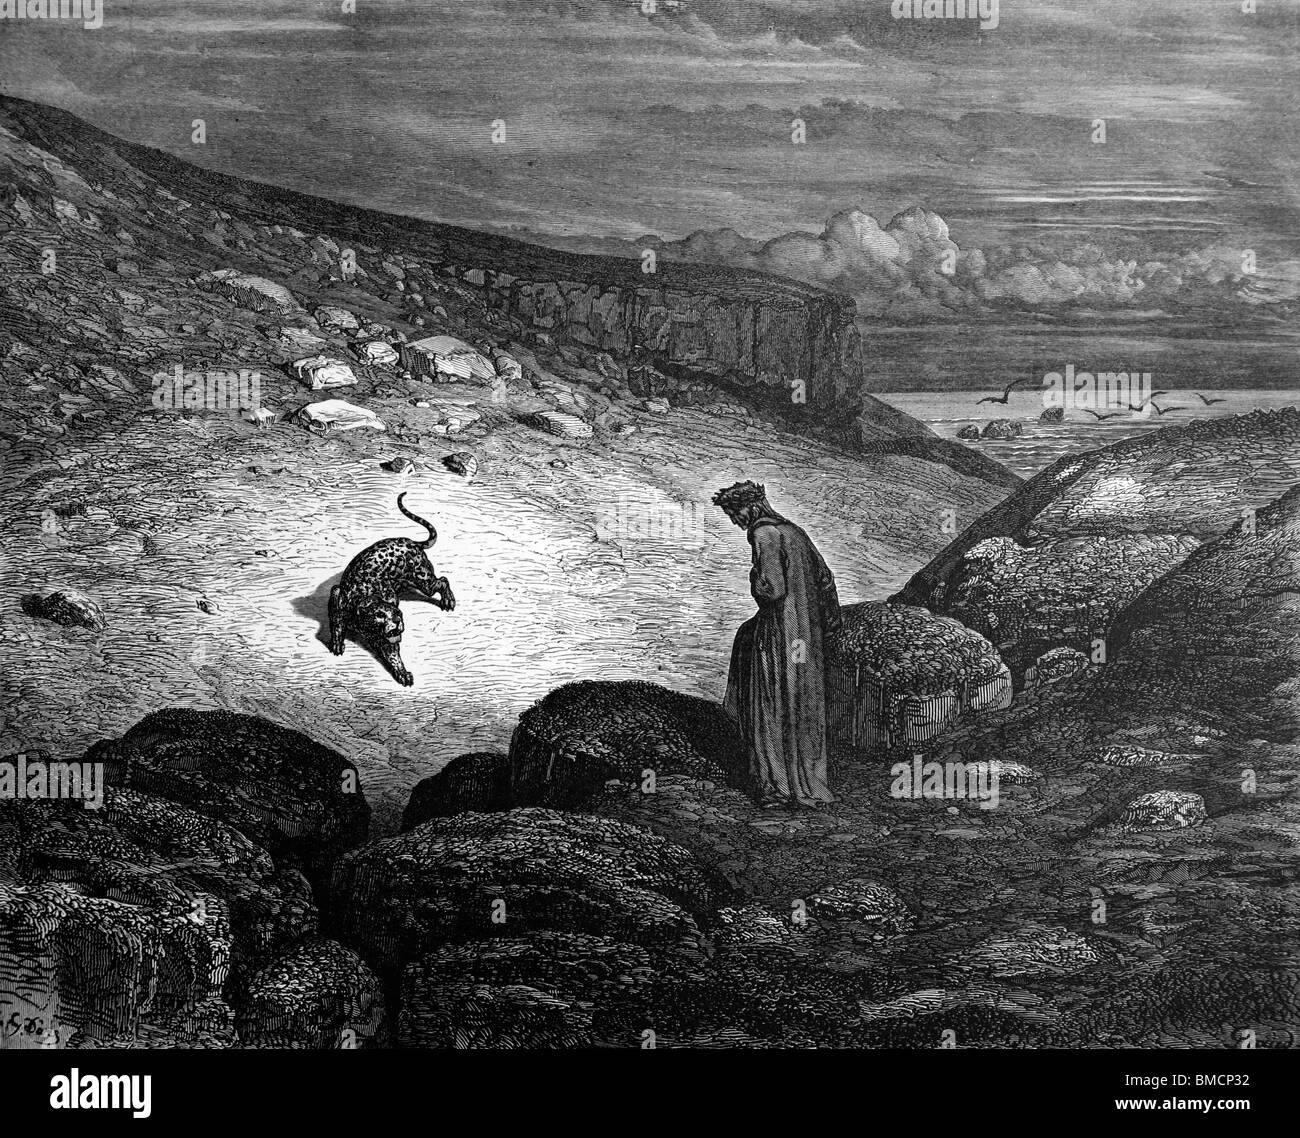 Engraving by Gustave Doré from Dante Alighieri's Divine Comedy 'Inferno' or 'Visions of Hell'; - Stock Image